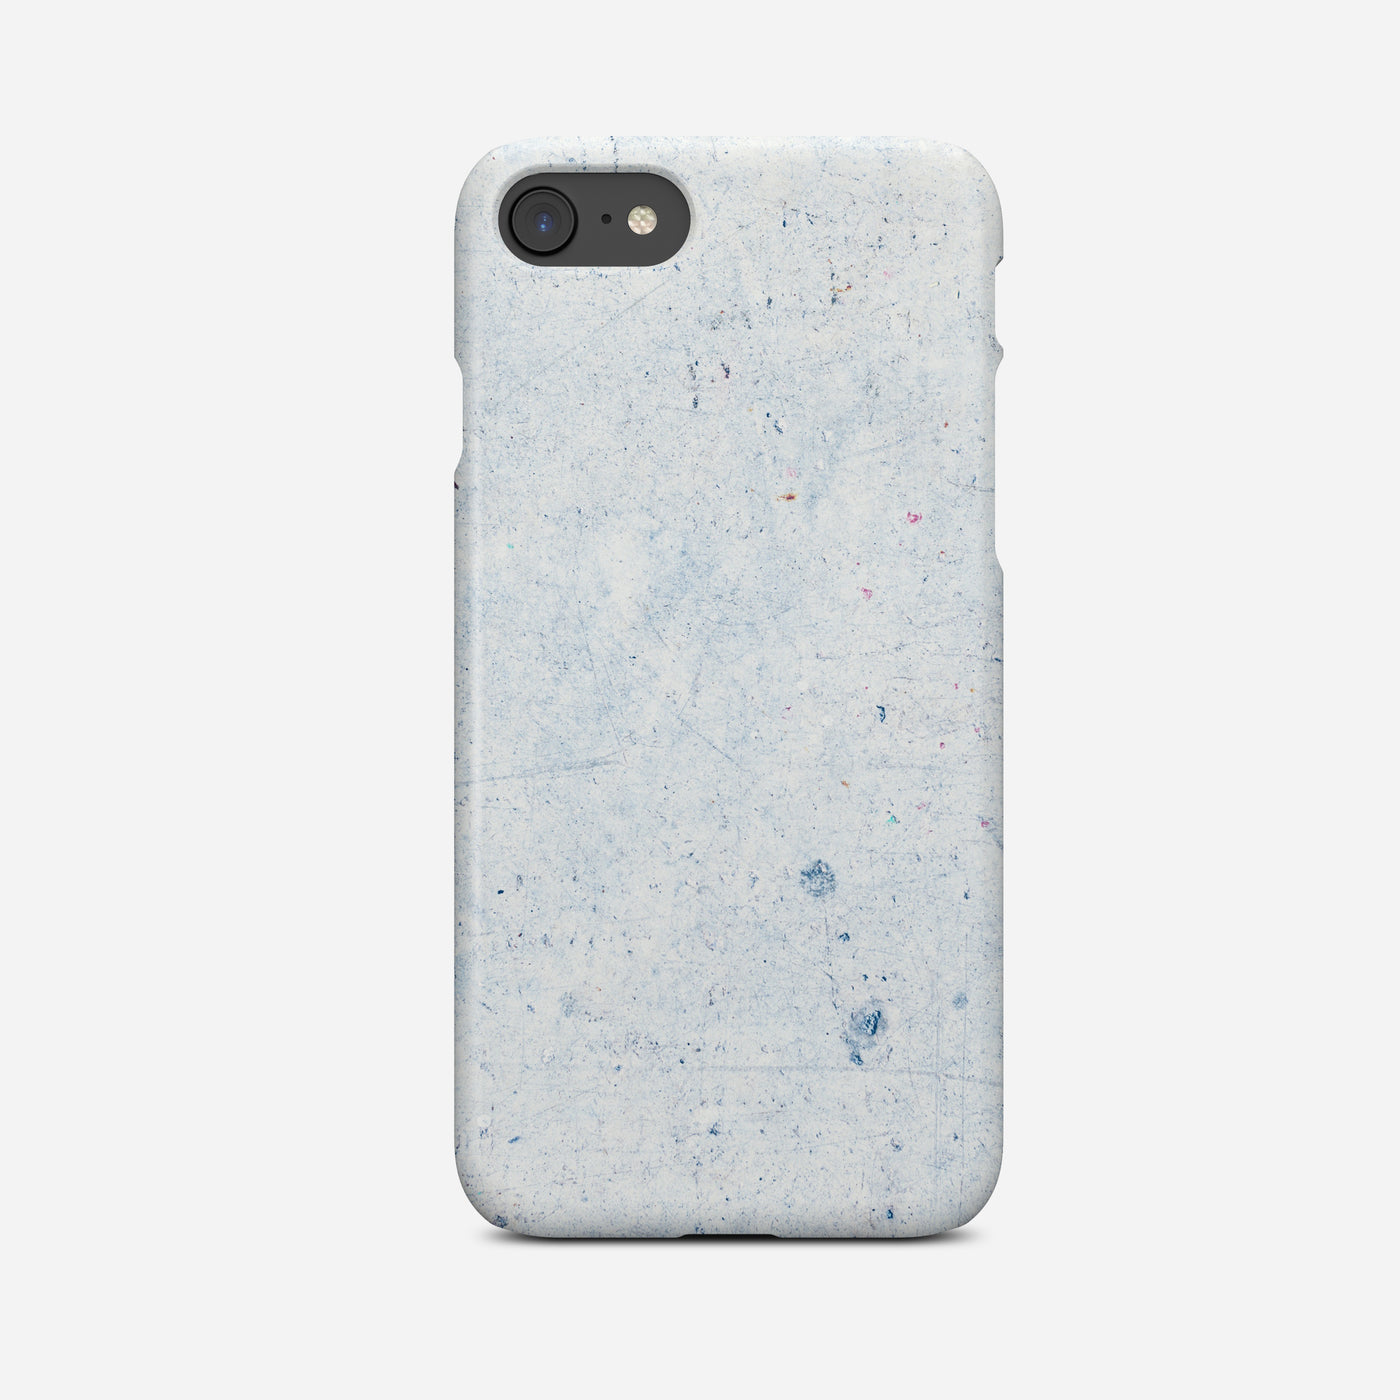 Recycled Paper Print Art Phone Case - Pretty in Print Art